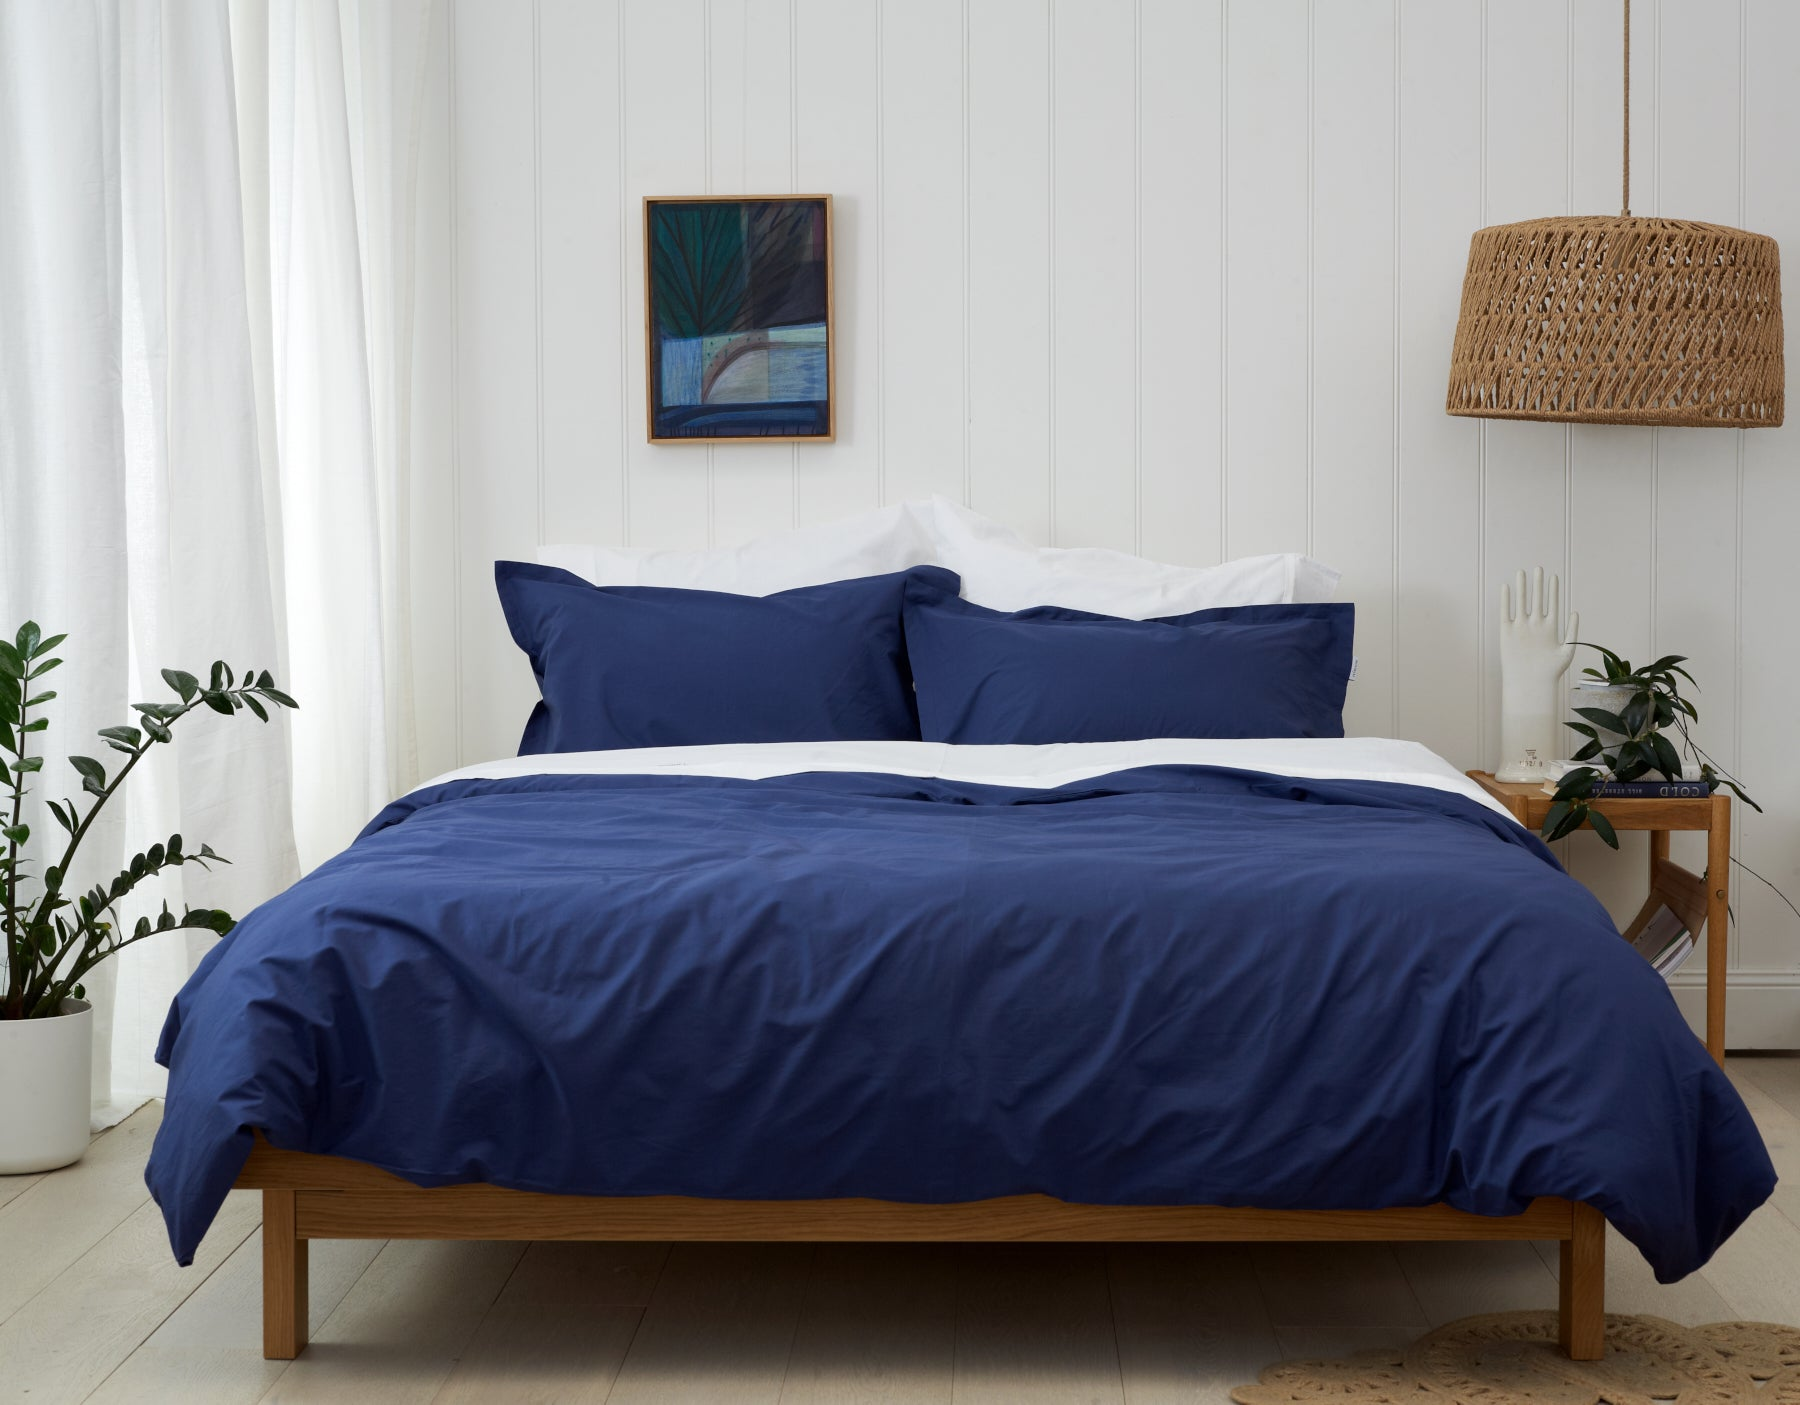 Urban Indigo -Bedlinen Bundle Buy. Includes White Sheet Set and Indigo Duvet Cover. Single-King Sizes. Save 5% when you buy this look. Free Shipping Australia. Afterpay and ZipPay